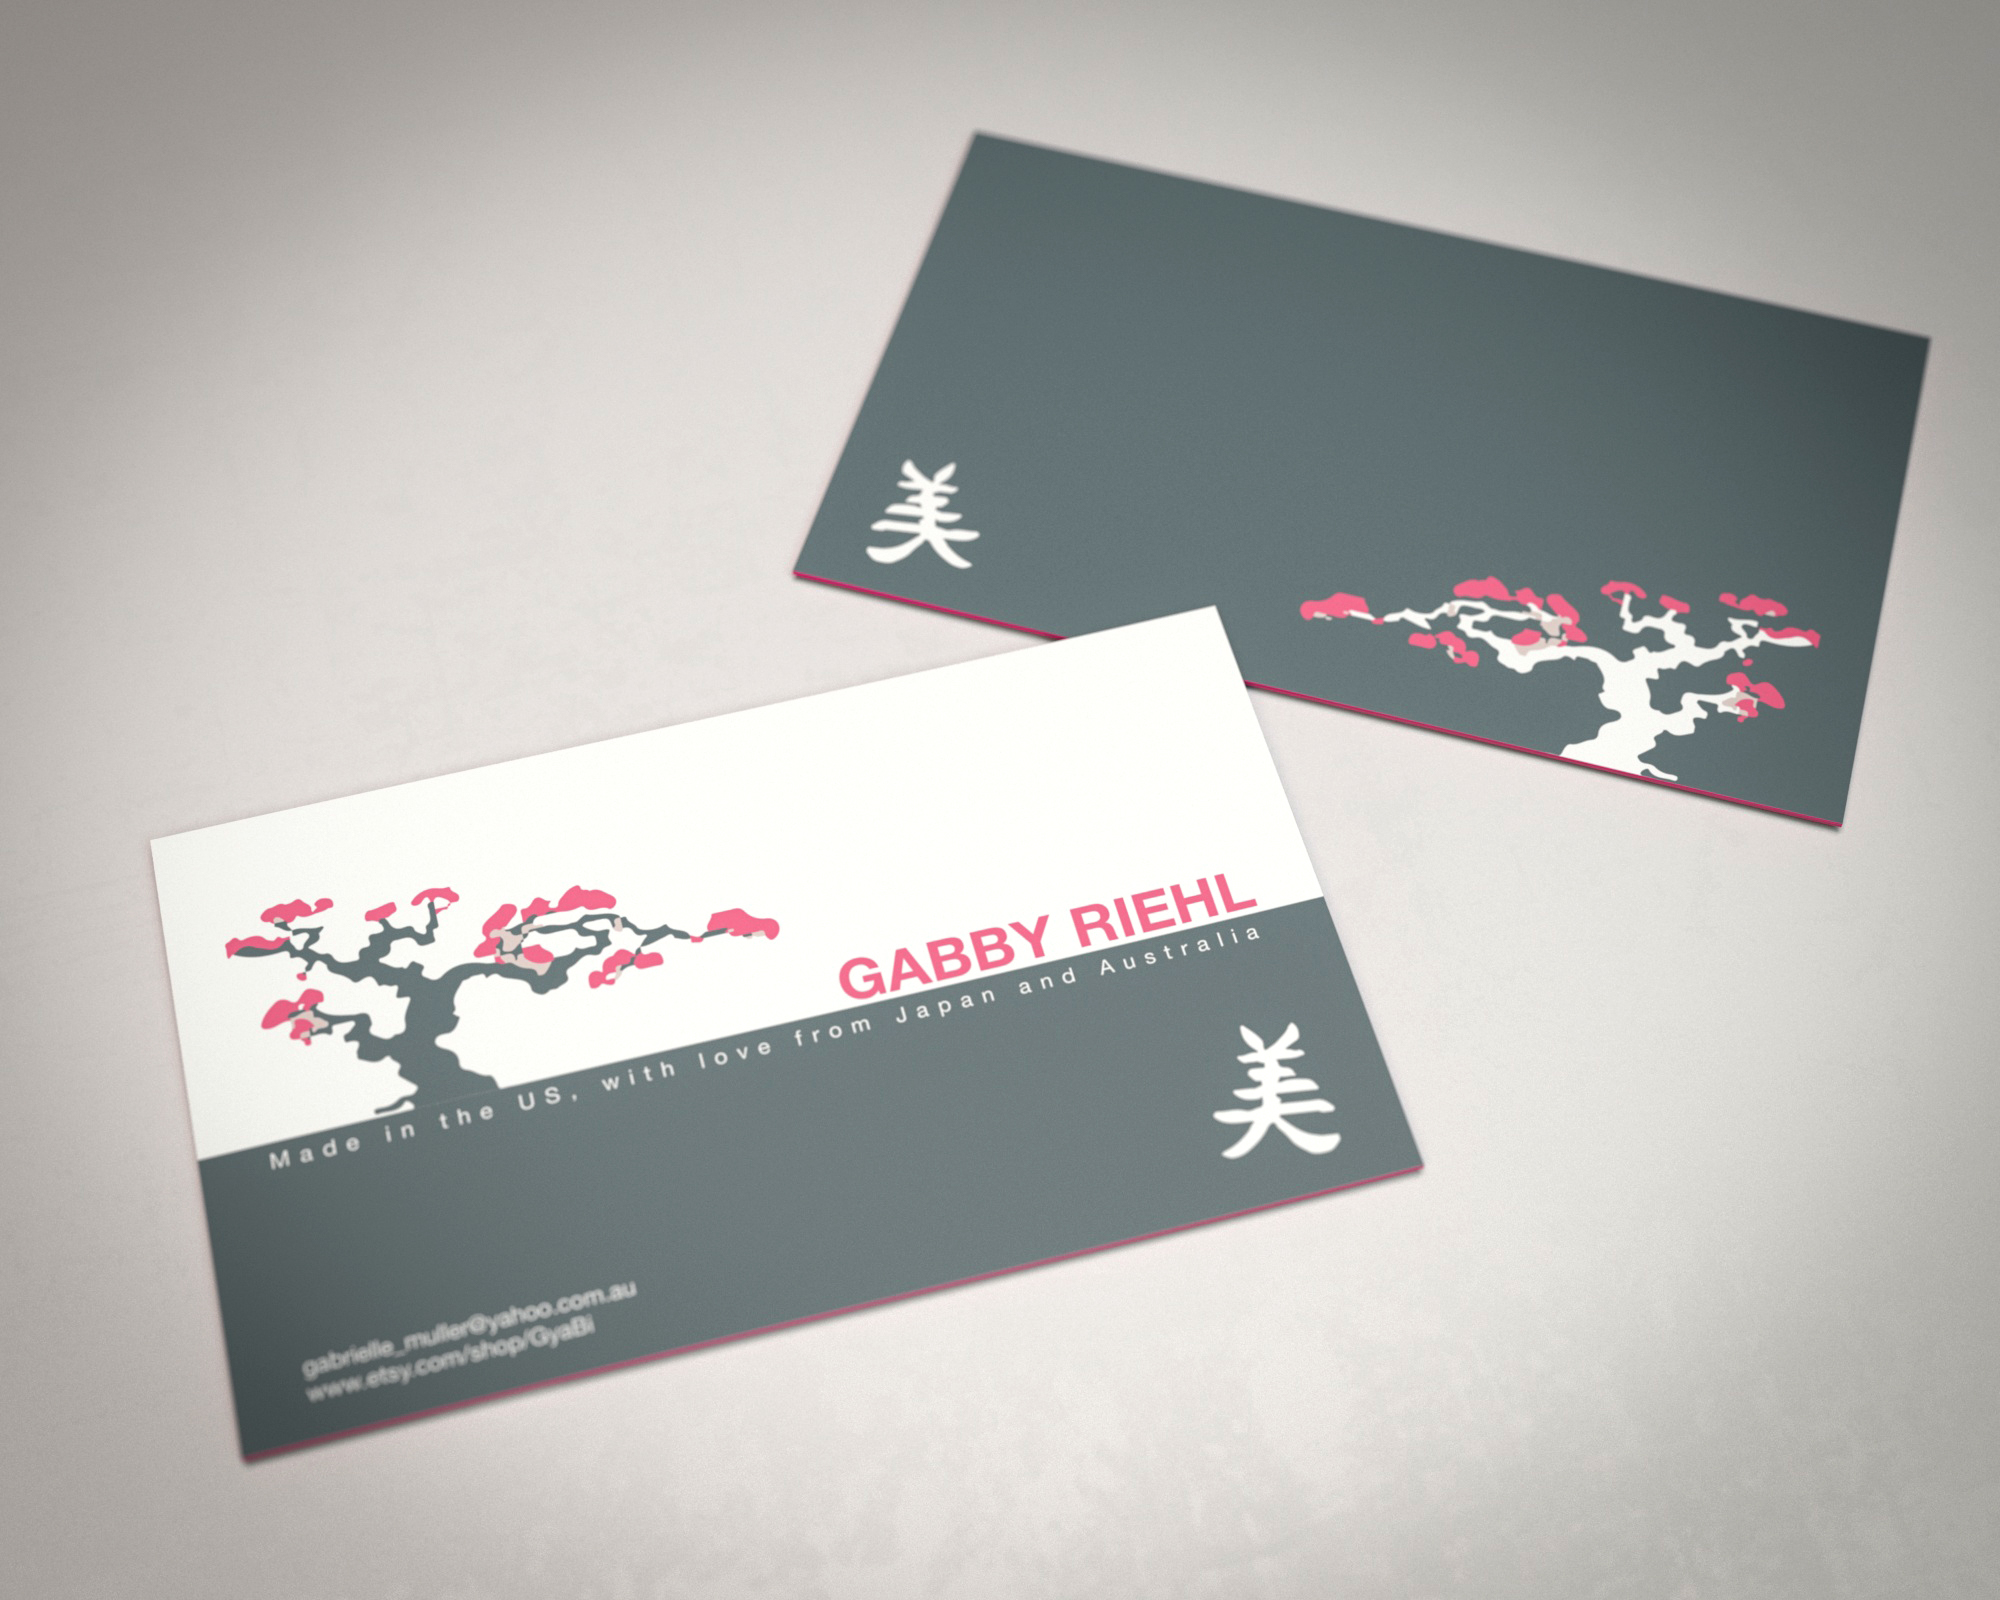 gabes business cards